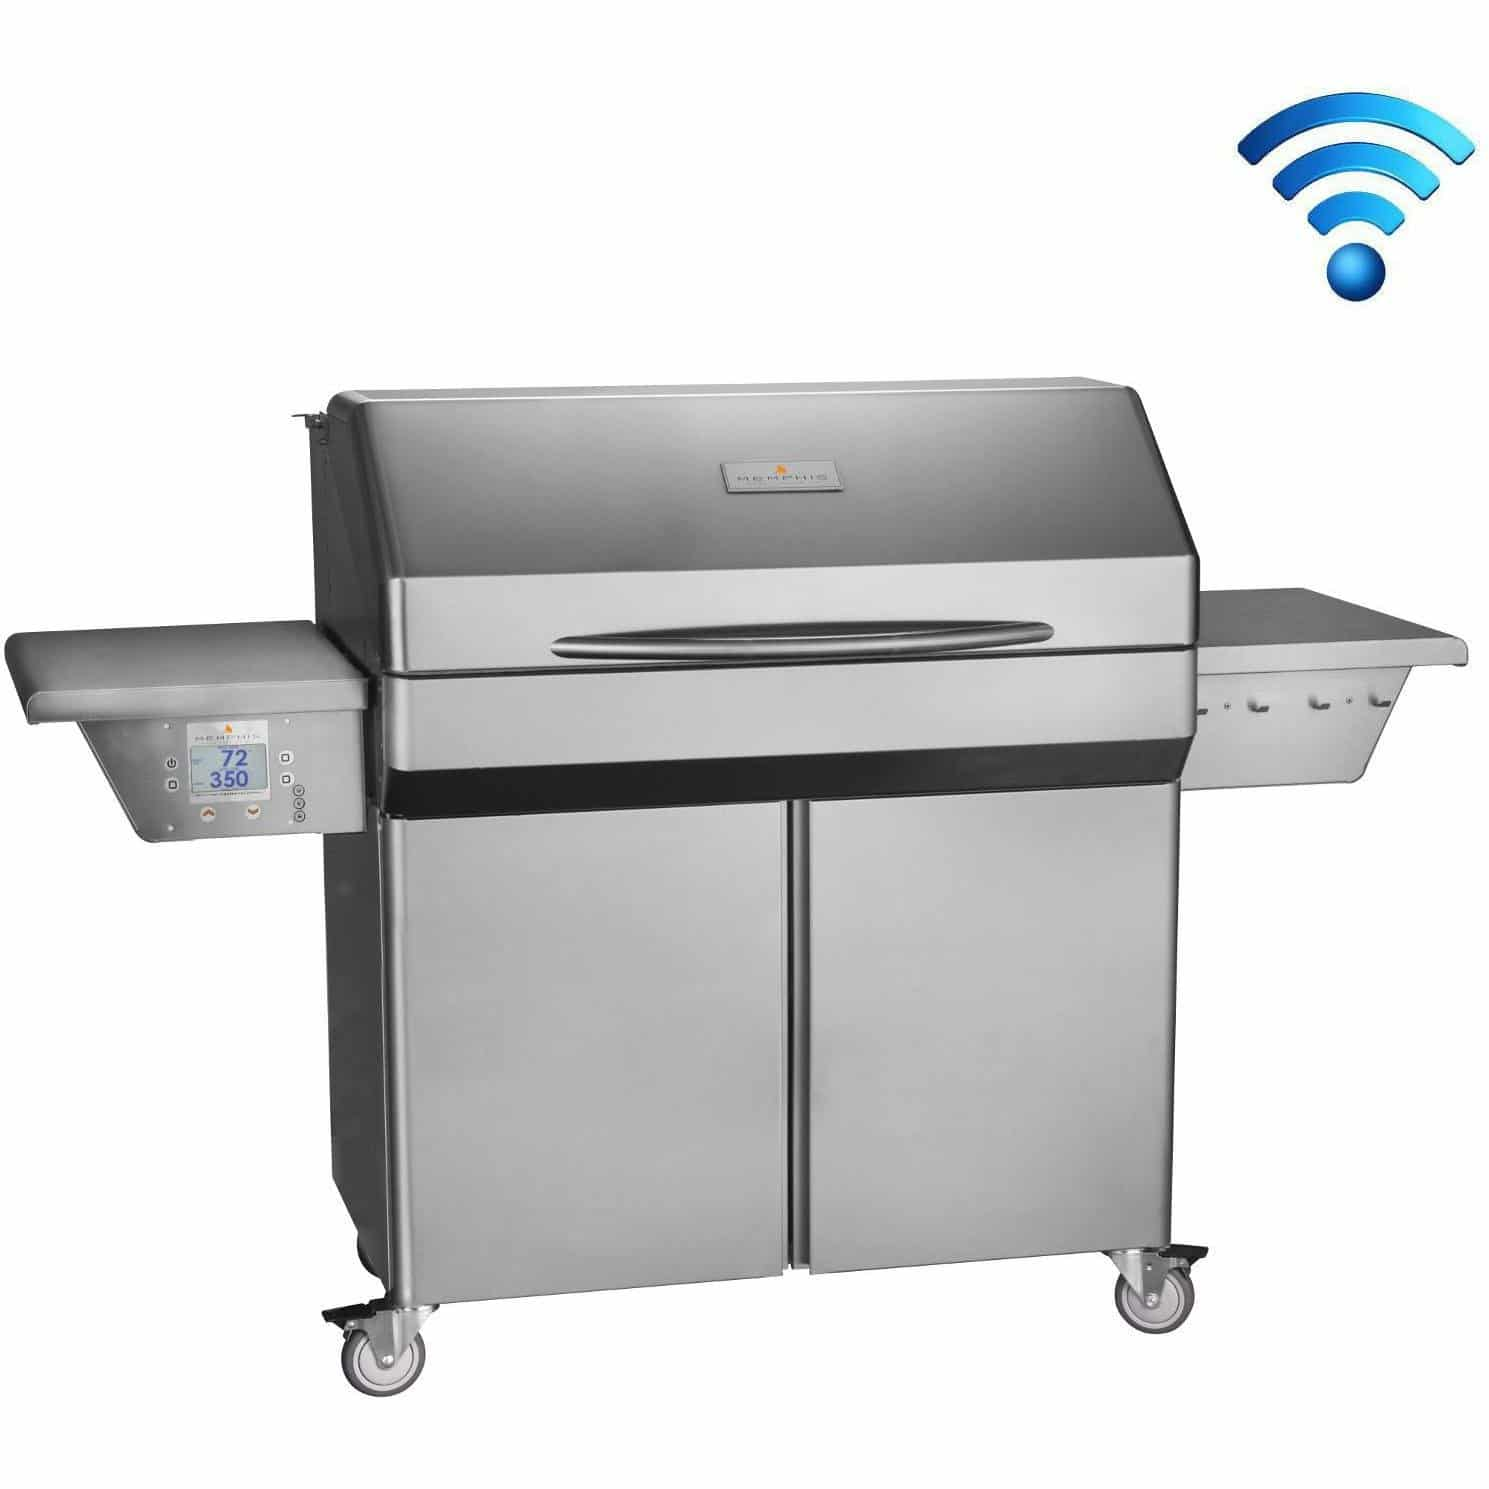 The 10 Best Wood Pellet Grills Of 2018 - The Grilling Life